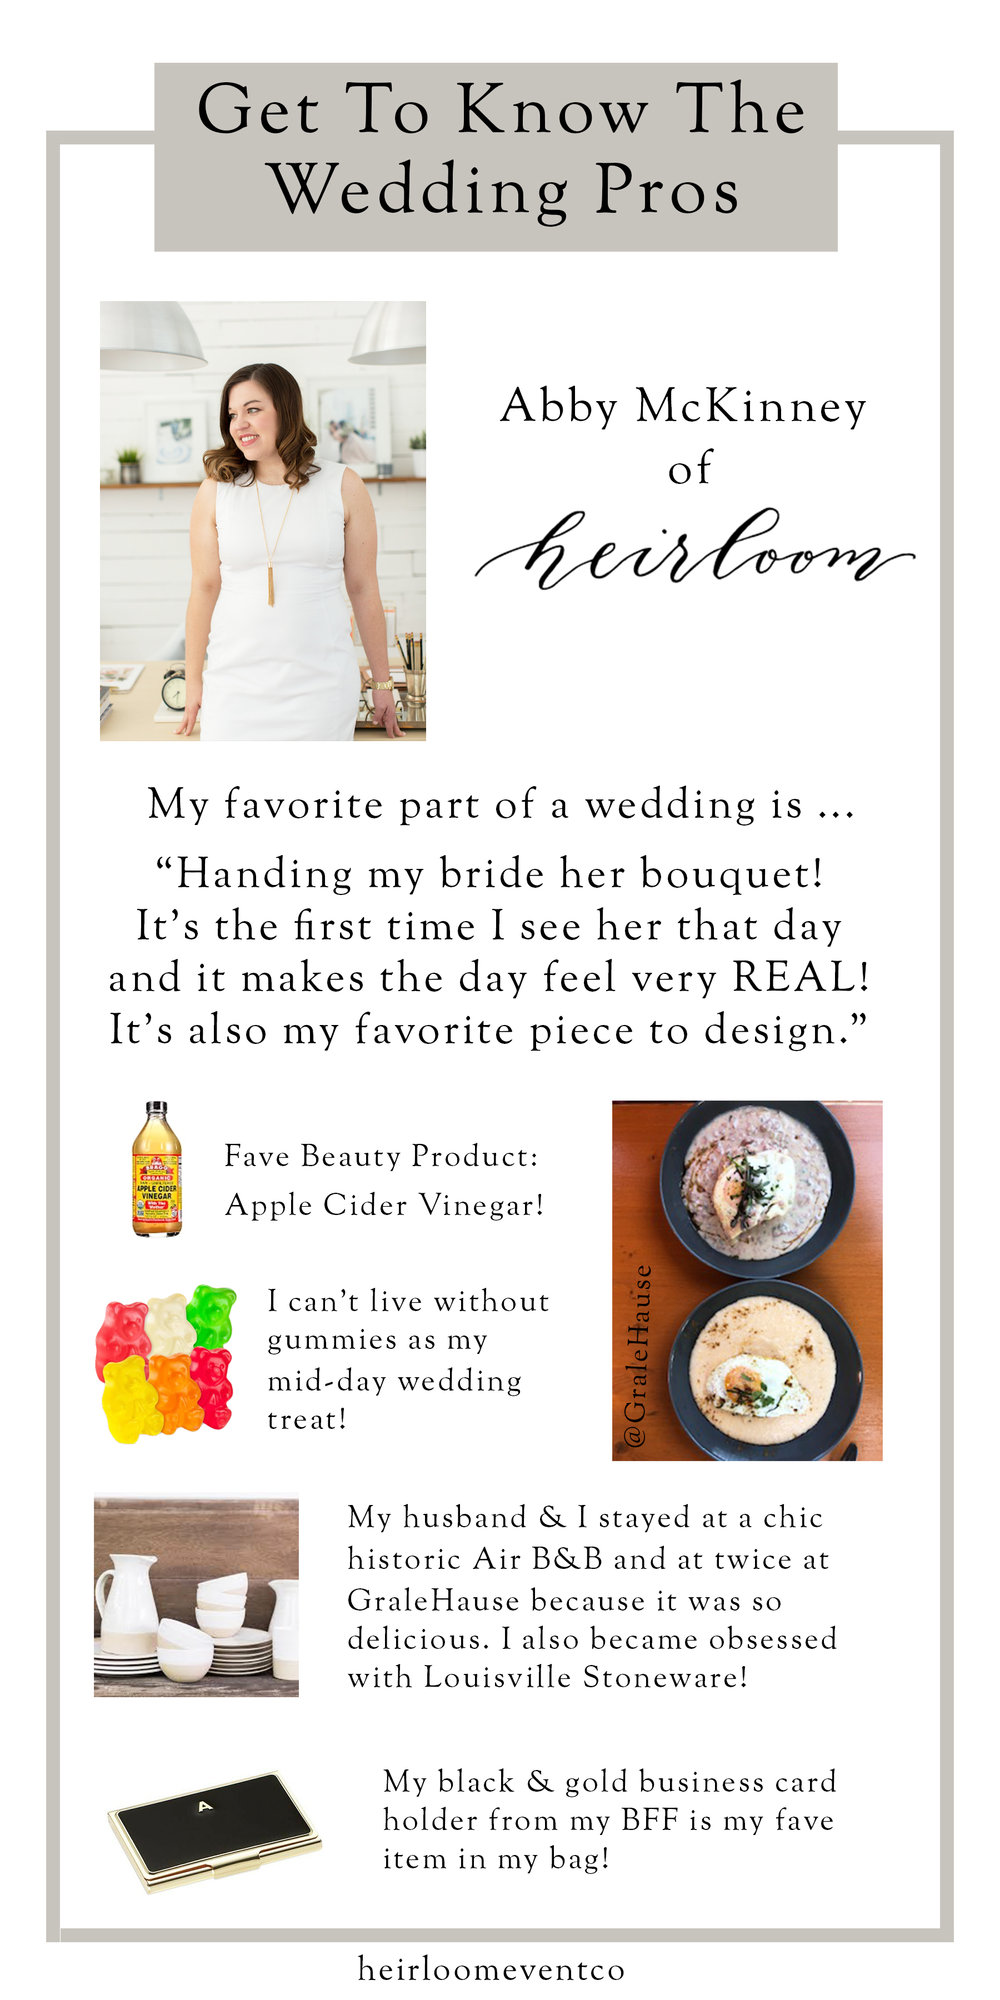 Heirloom Event Co. | Get To Know The Wedding Pros